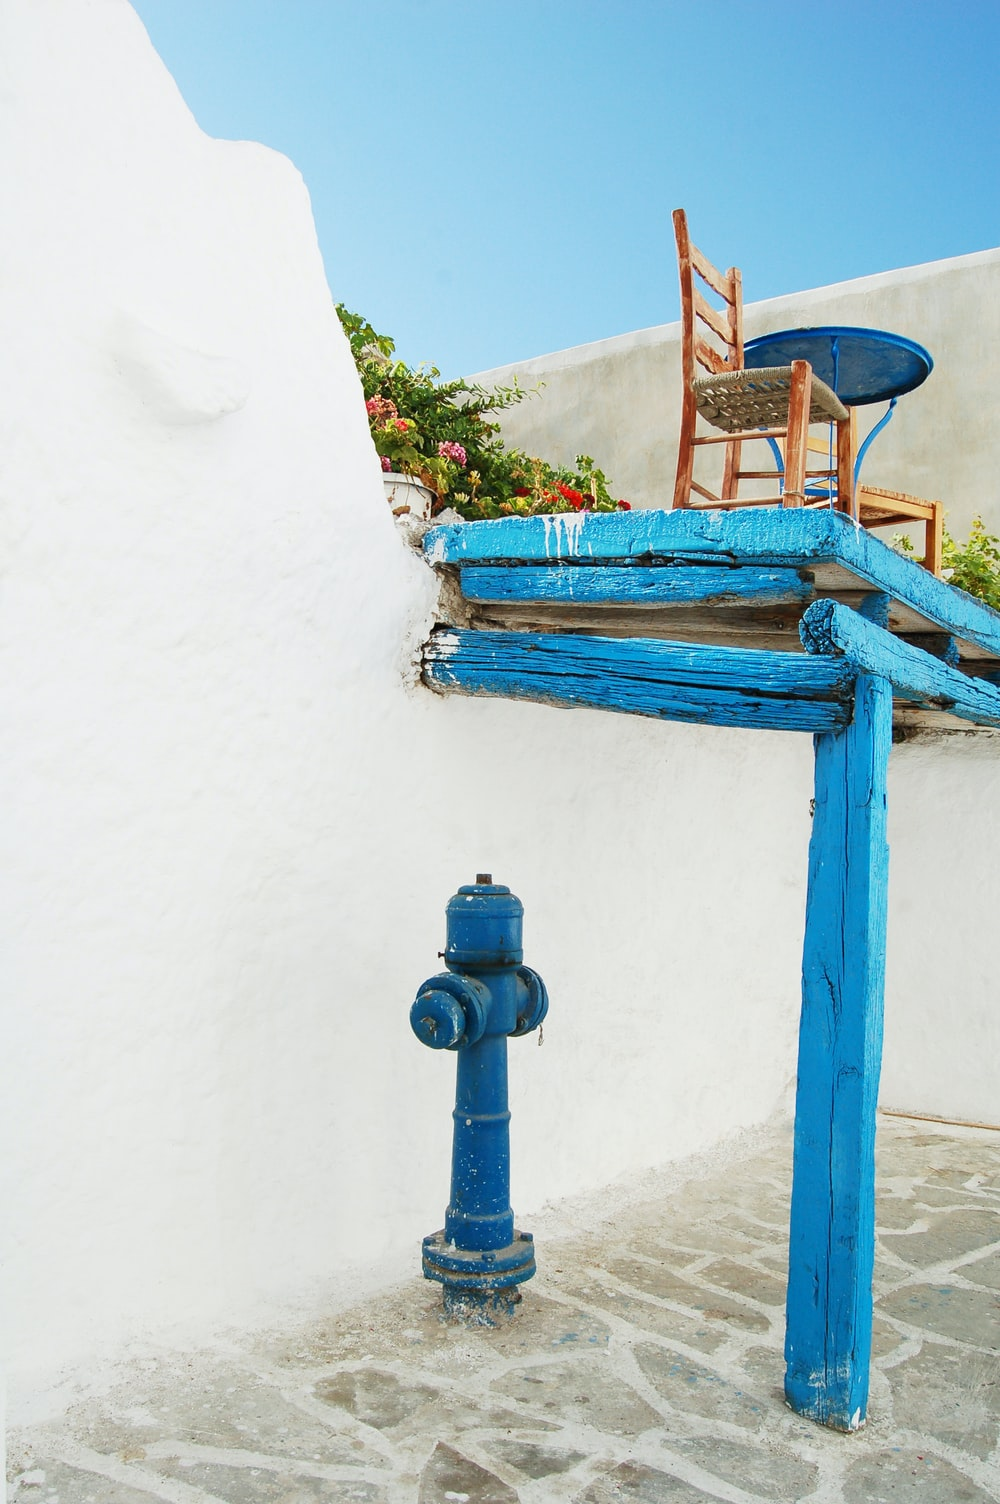 blue hydrant under blue wooden loft with chair on top under blue sky at daytime